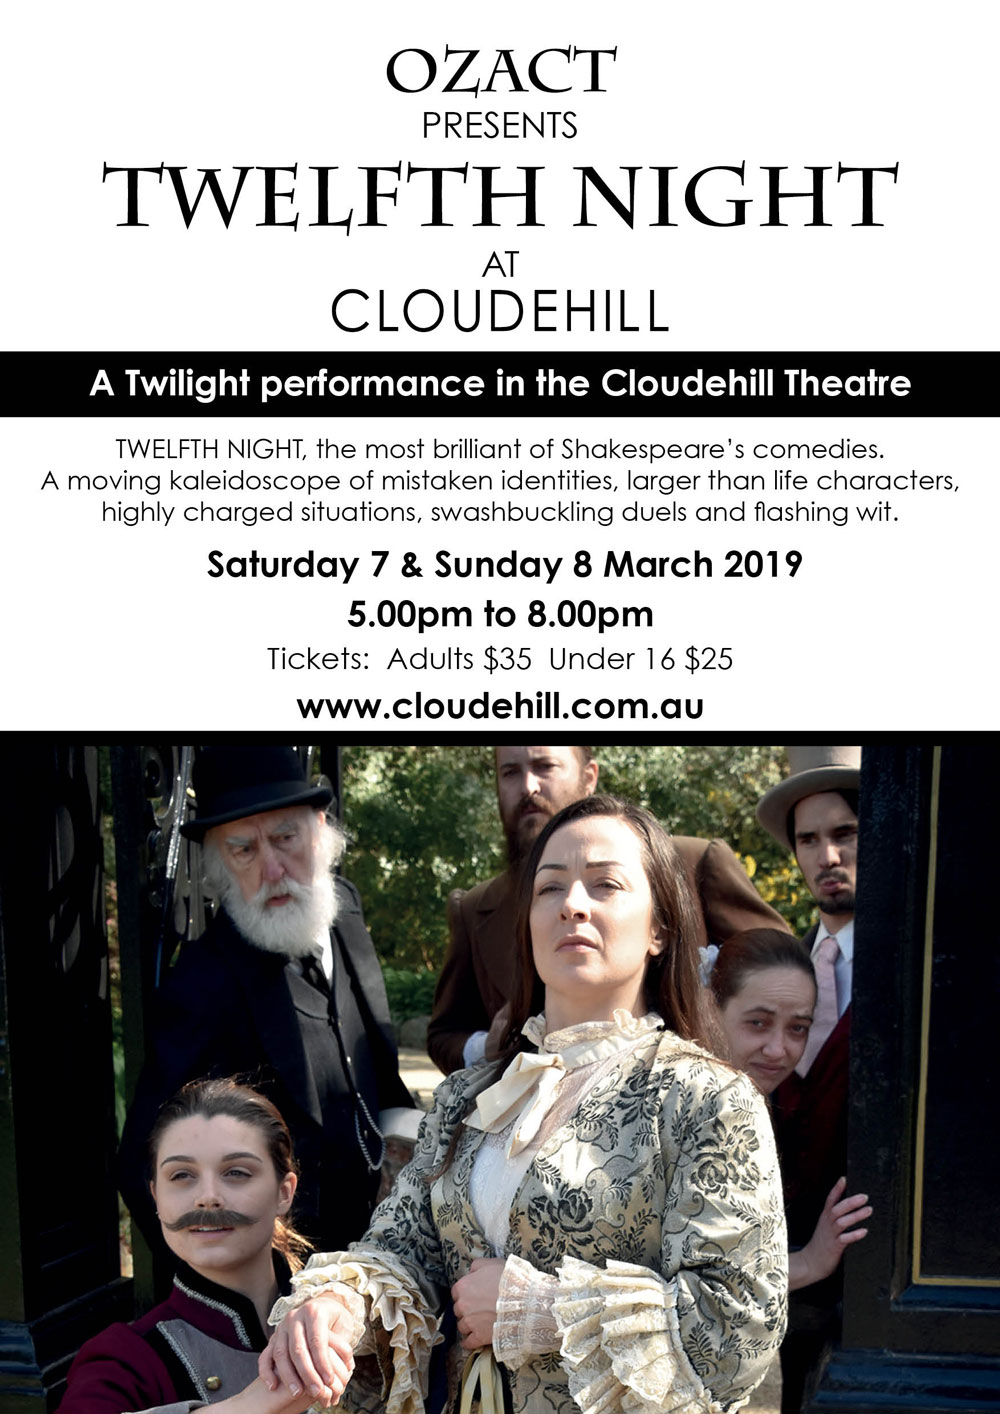 Twelfth Night at Cloudehill